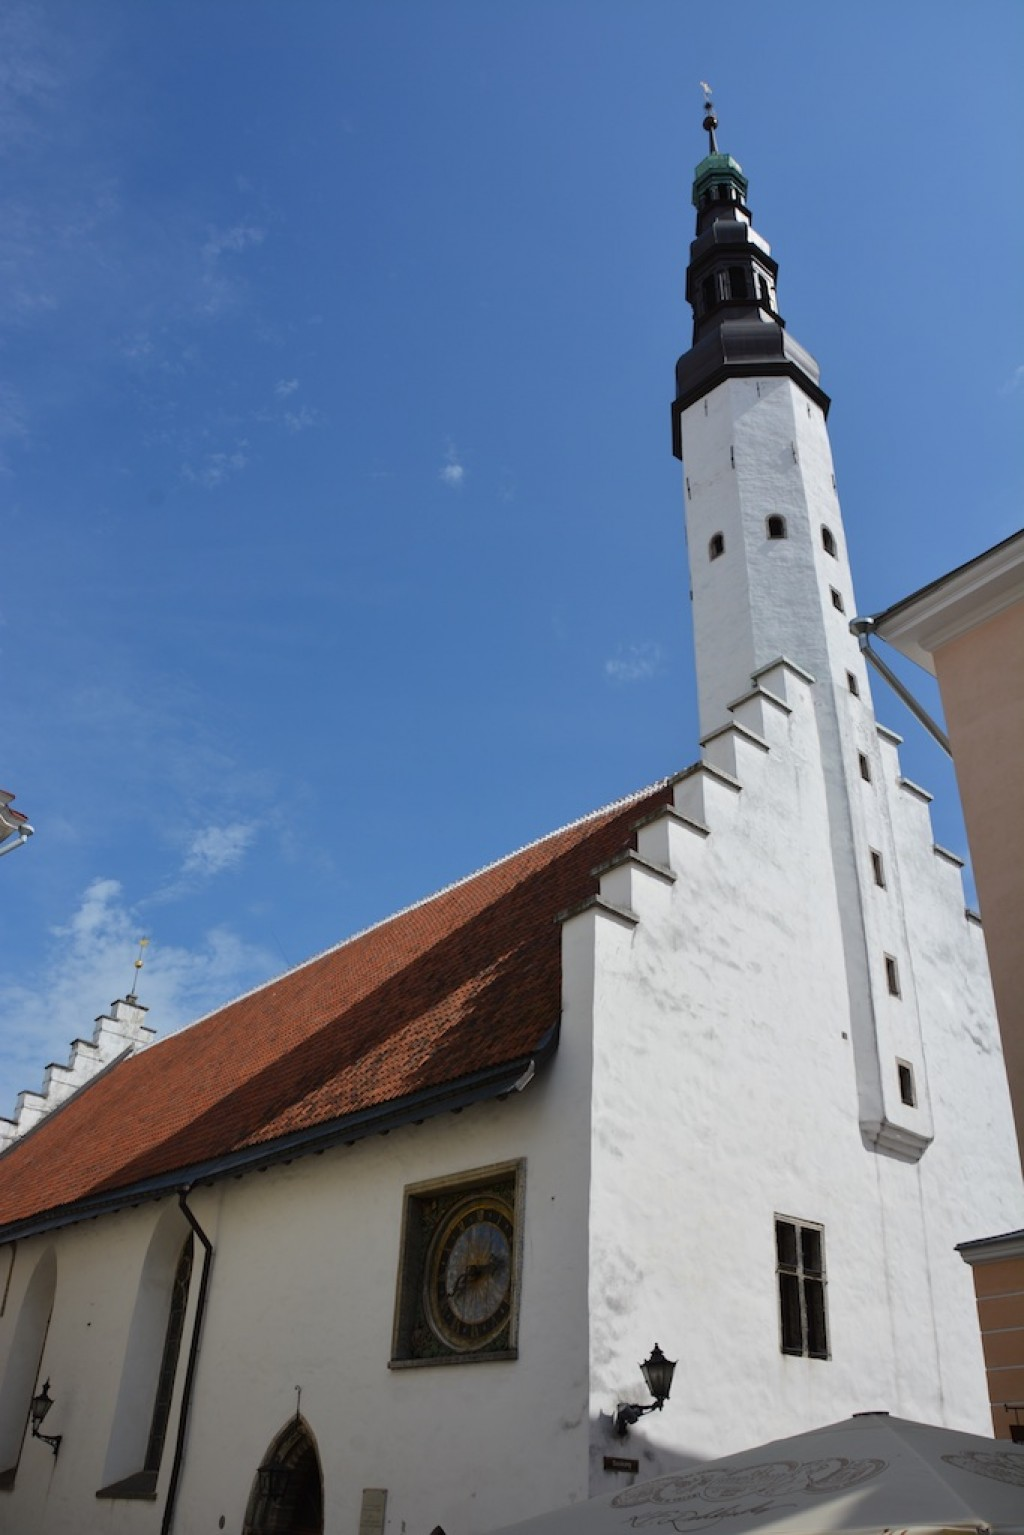 The Holy Spirit Church